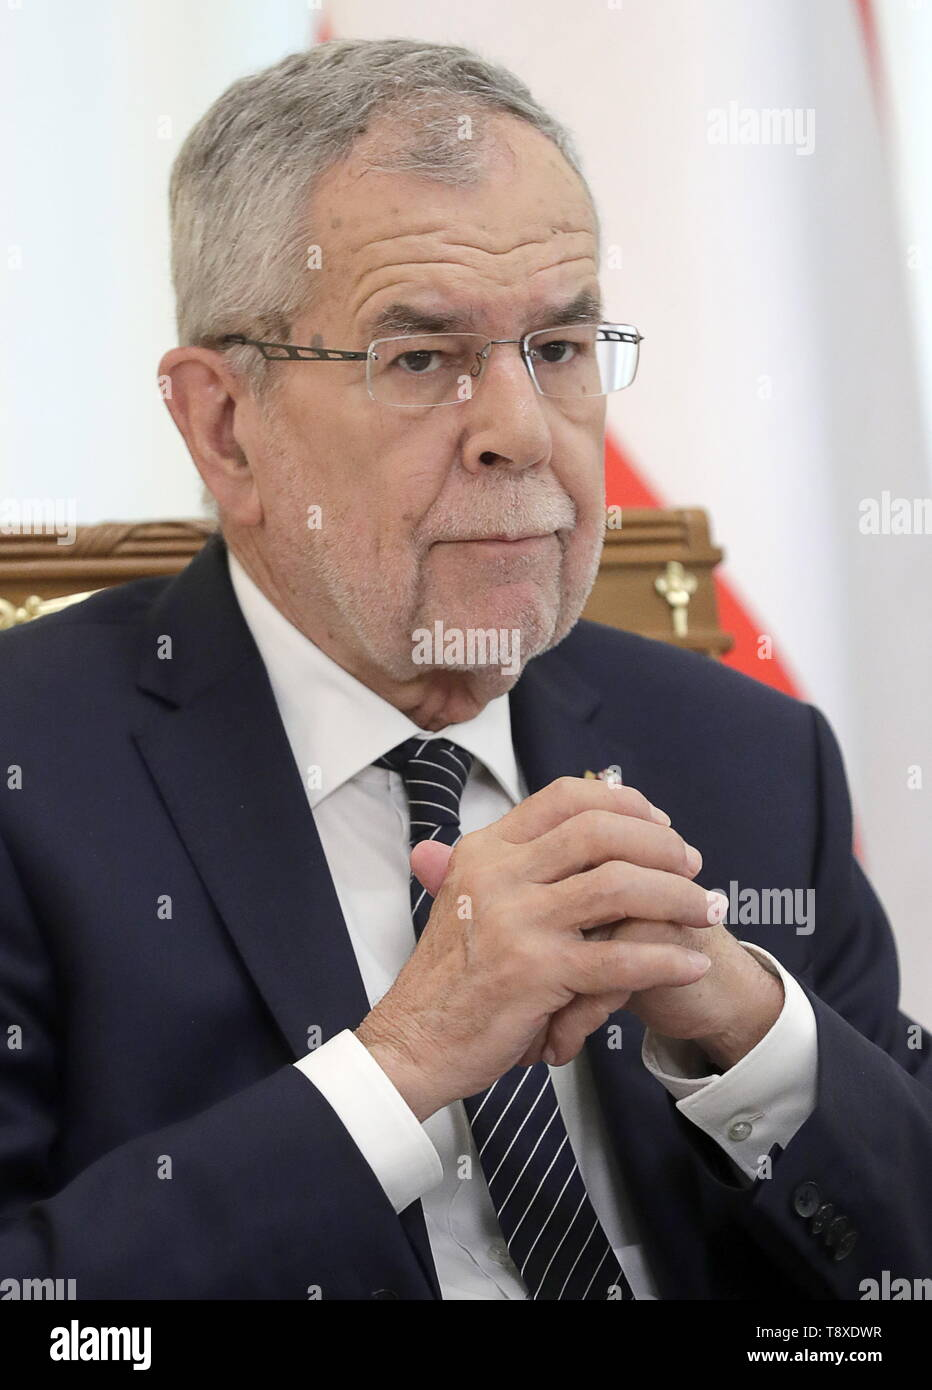 Sochi, Russia. 15th May, 2019. SOCHI, RUSSIA - MAY 15, 2019: Austria's President Alexander Van der Bellen during talks with Russia's President Vladimir Putin (not in picture), at the Rus health resort. Mikhail Metzel/TASS Credit: ITAR-TASS News Agency/Alamy Live News - Stock Image